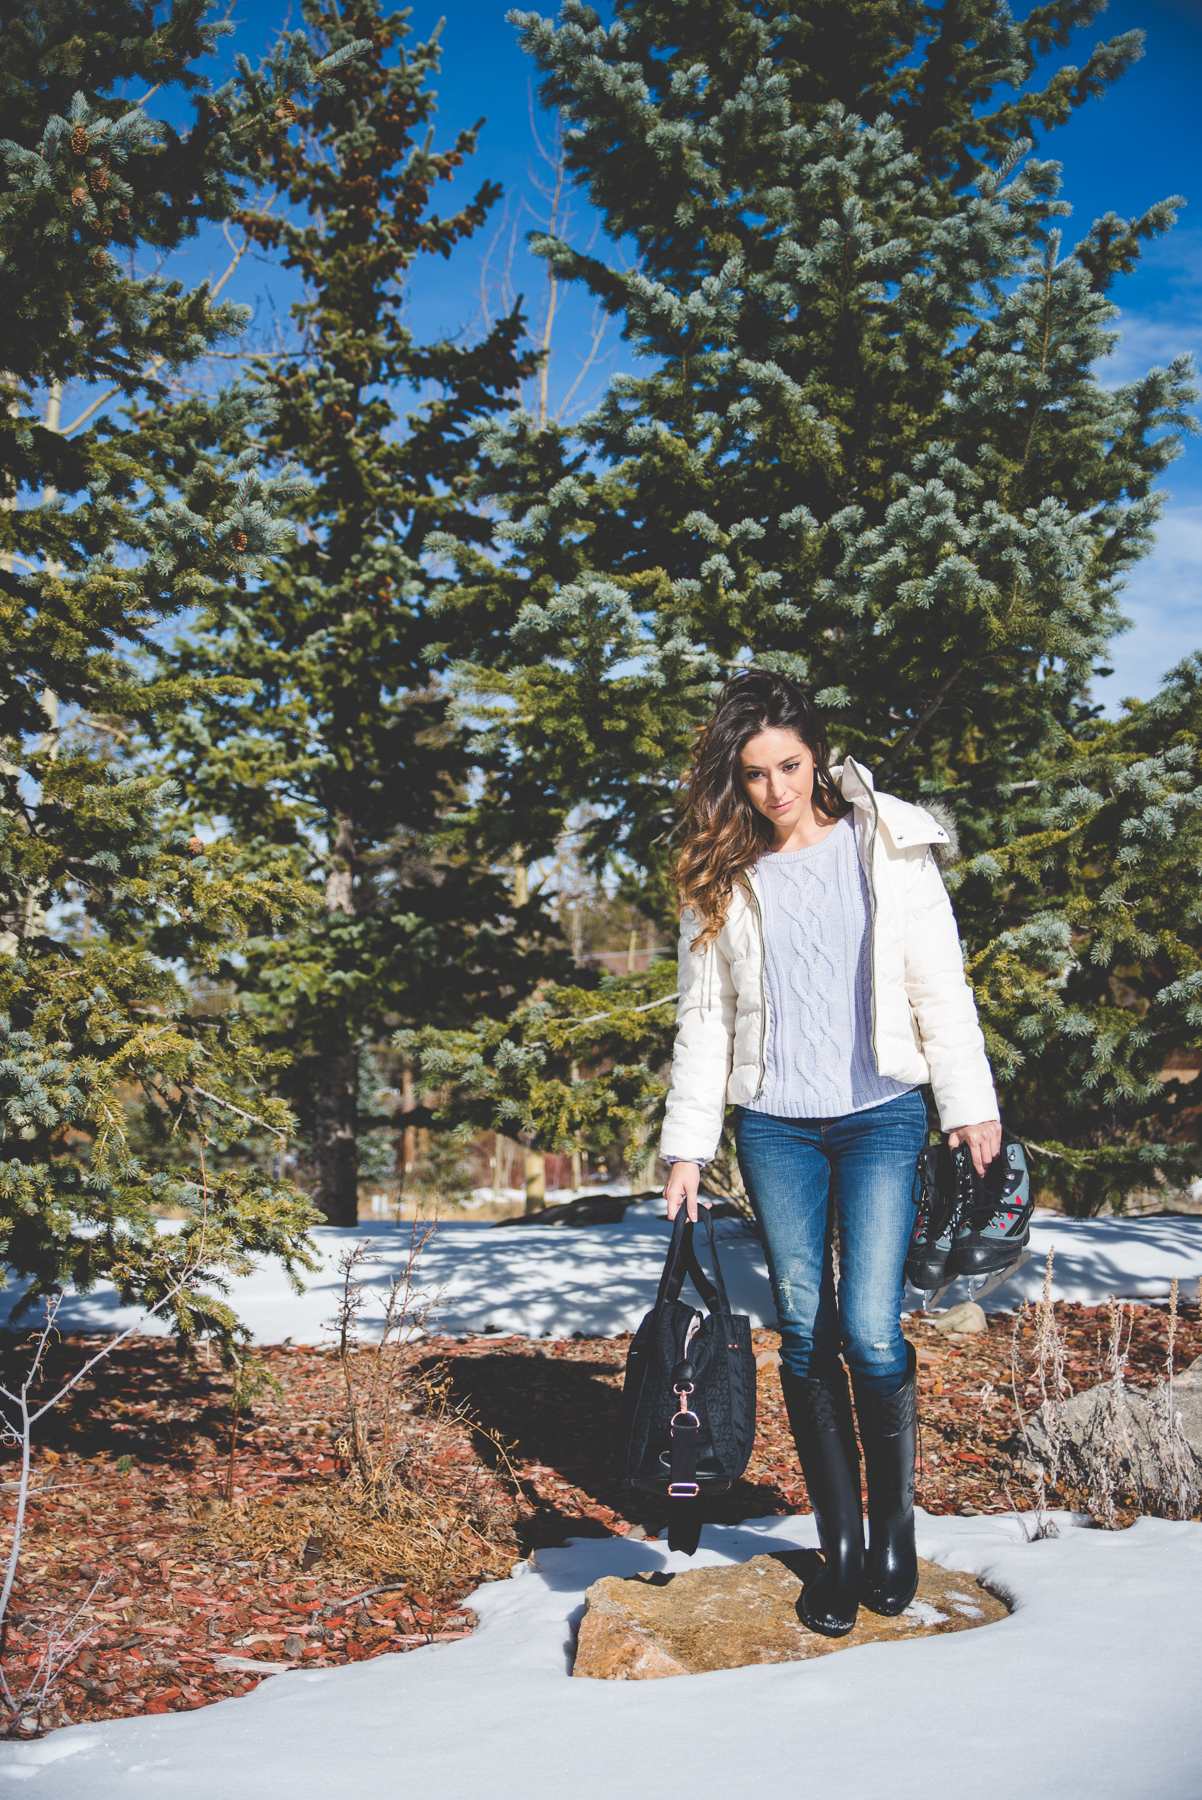 breckenridge, colorado, ice skating, winter sports, winter activities, what to do when it's cold outside, winter travel, travel blogger, vaseline deep moisture lotion